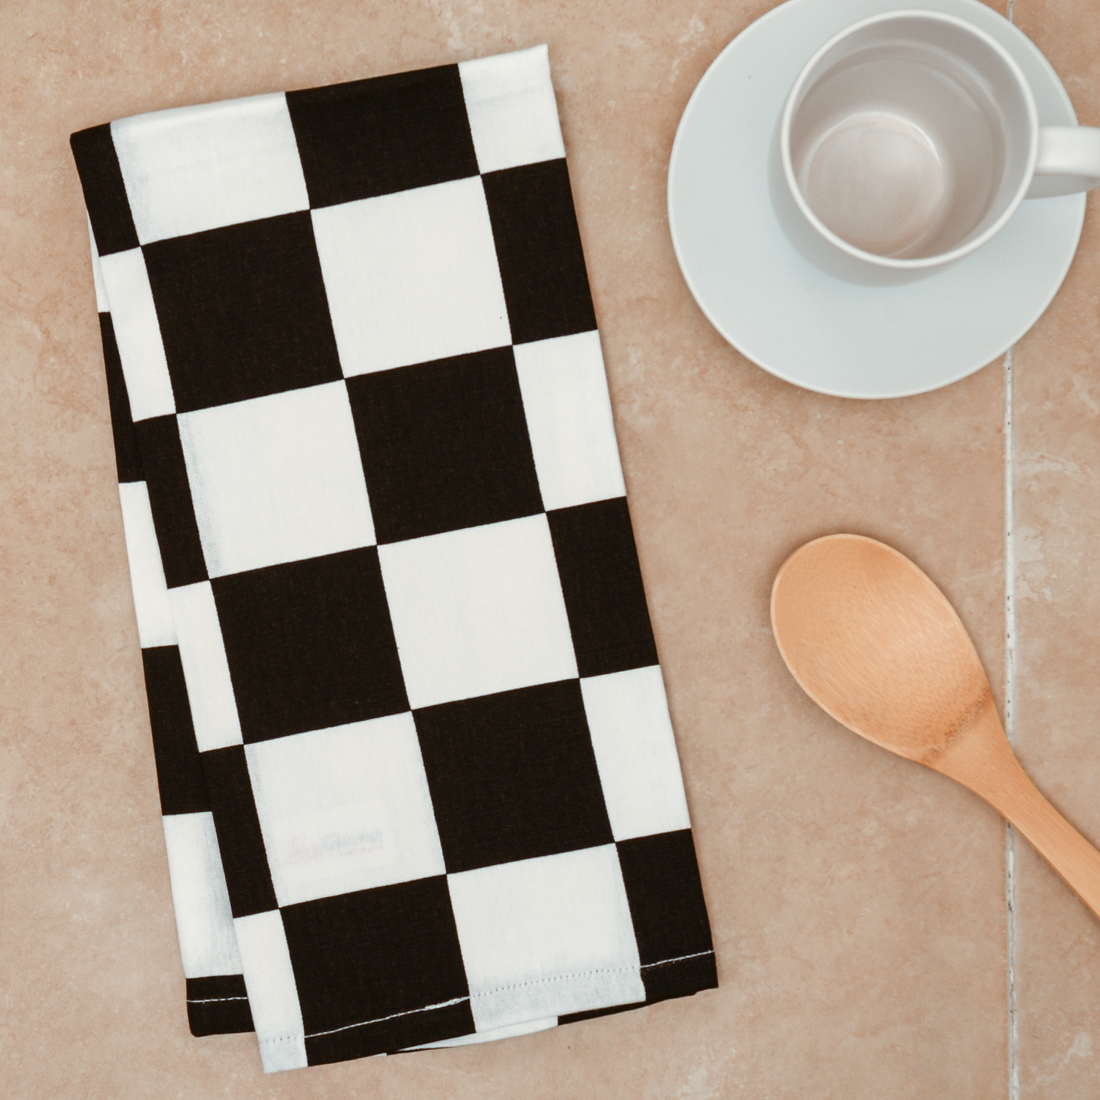 Black & White Checker Board Kitchen Towels 2 pack by Linen Tablecloth